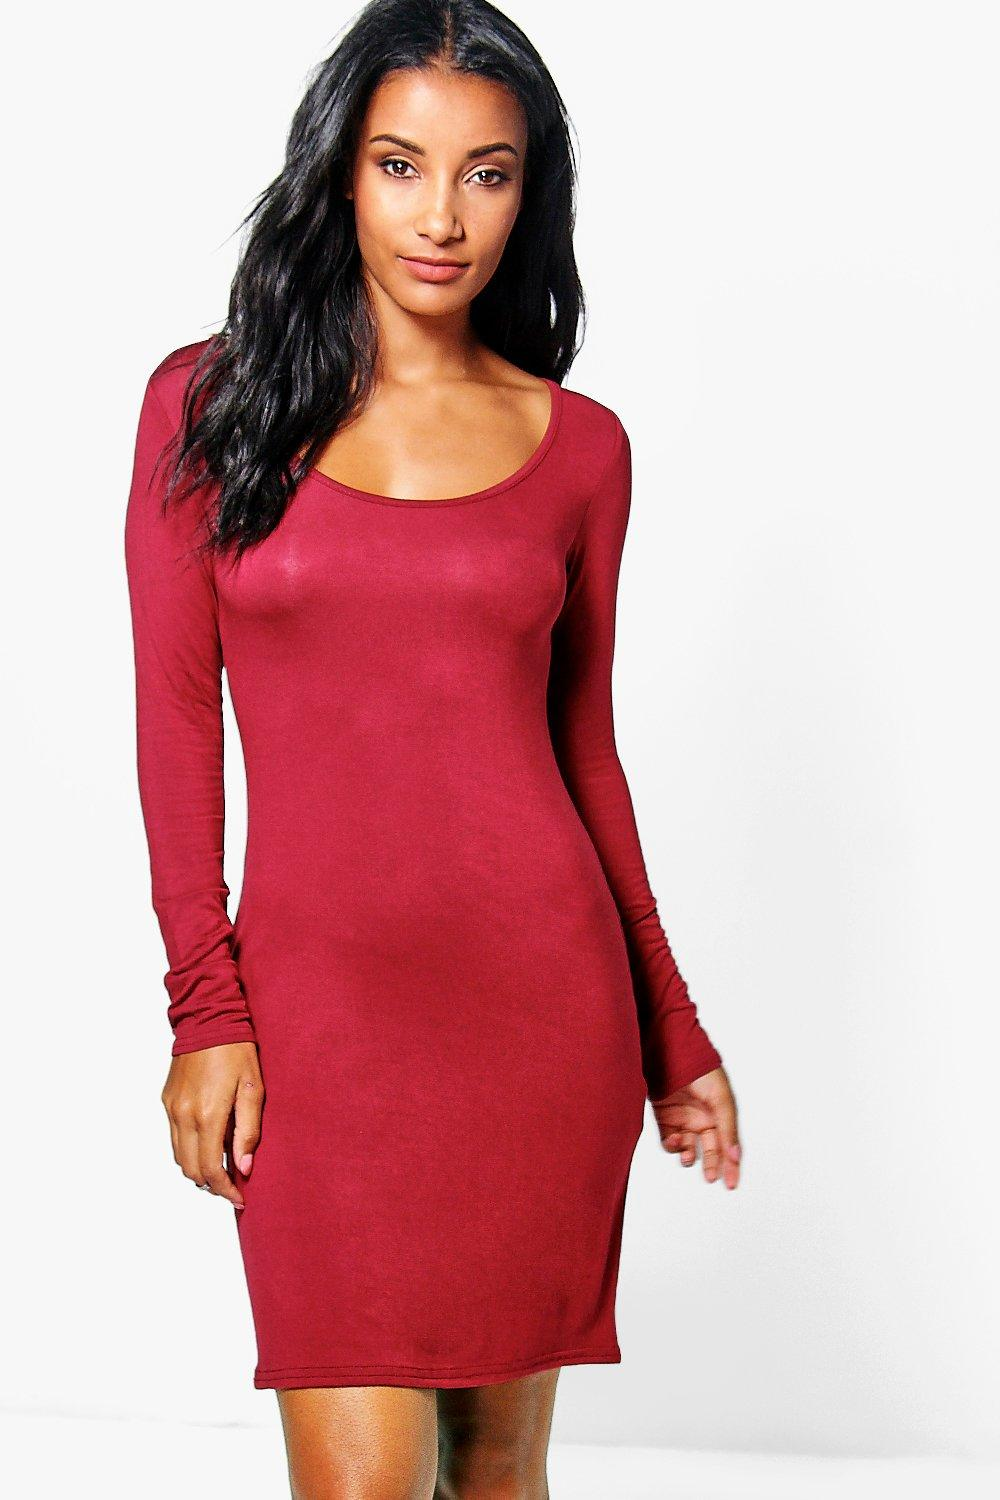 Emi Long Sleeved Scoop Neck Bodycon Dress